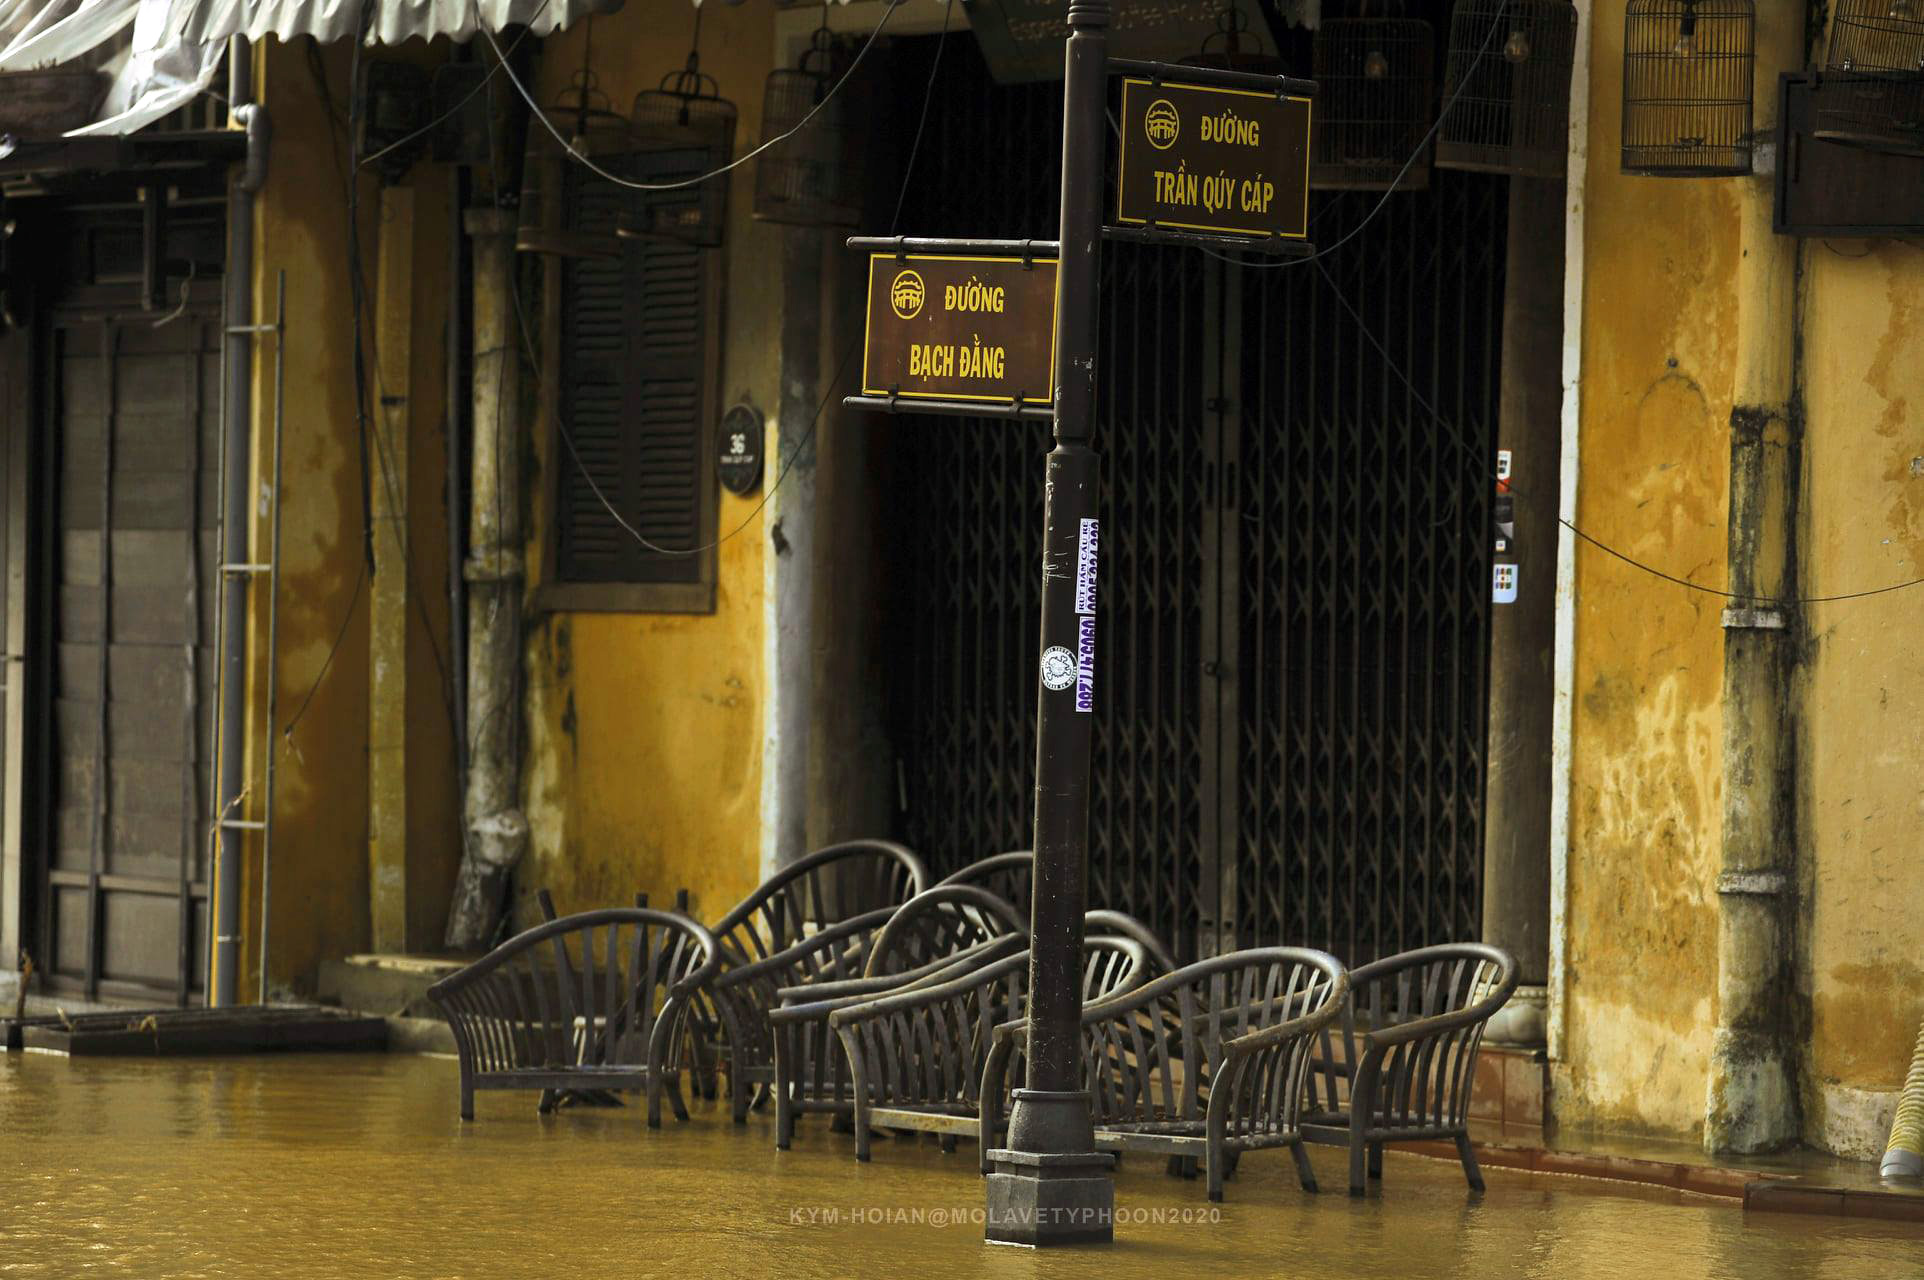 Hoi An limps back after storm Molave destruction